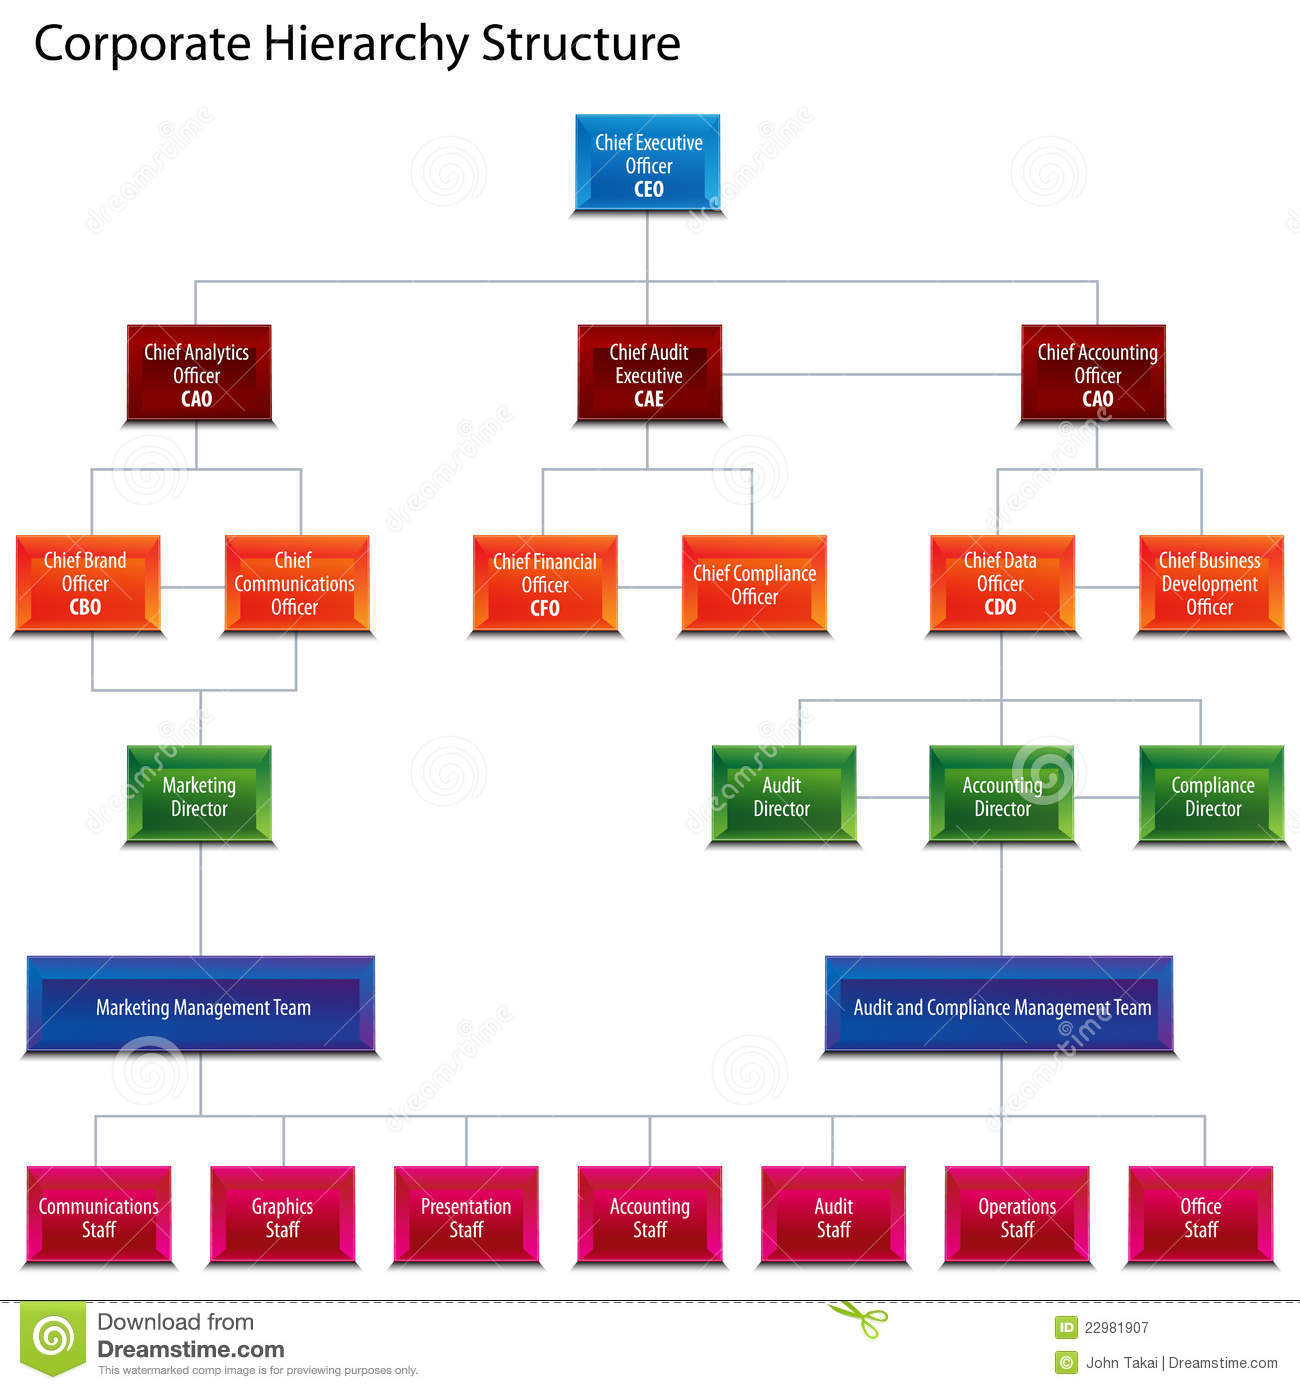 Corporate Structure Business Org Chart Stock Images - Image: 32795104